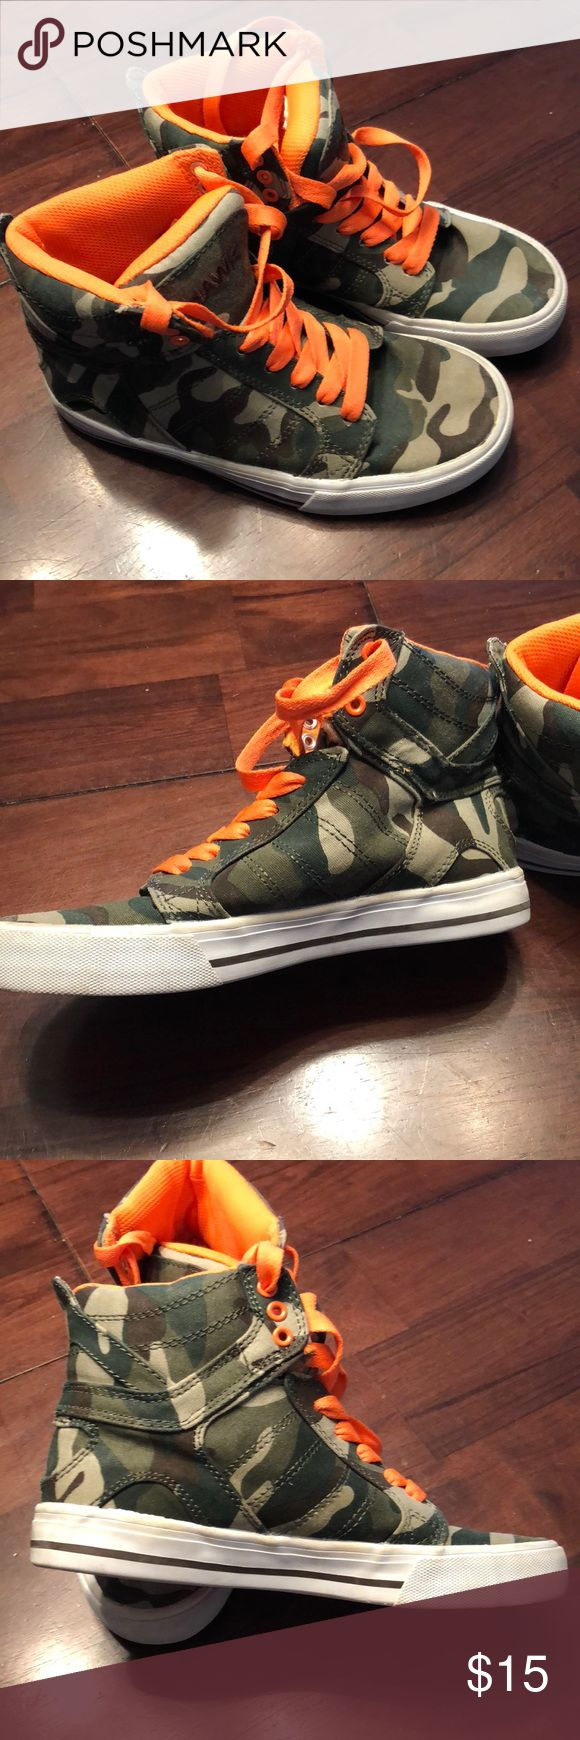 Tony Hawk Sneaker Hi Tops Boys Size 4 Gently worn with no holes, rips, or stains on canvass. These are very nice with lots of life left in them. Extra padding on tongue of shoe for added comfort! Tony Hawk Shoes Sneakers